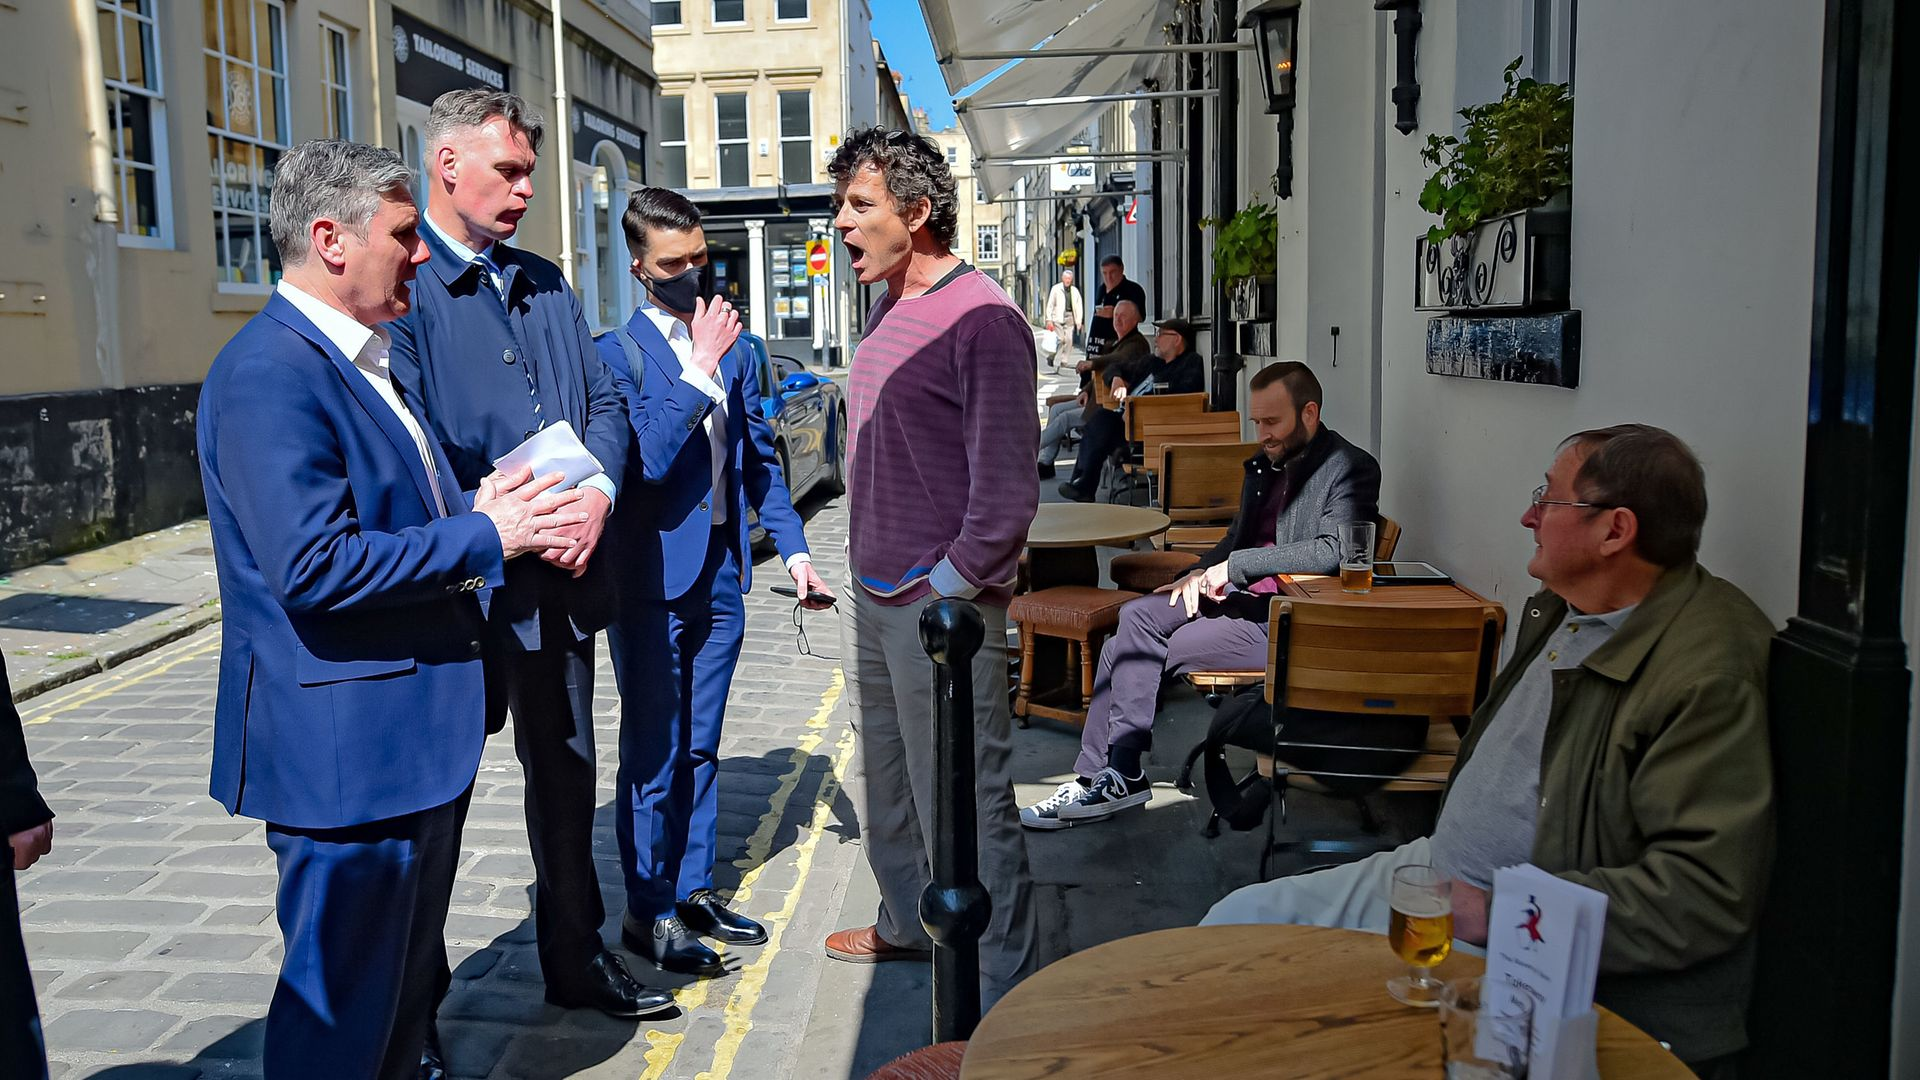 Labour leader Sir Keir Starmer listens to Rod Humphris,  The Raven pub in Bath, shout at him on Monday April 19, 2021 - Credit: Ben Birchall/PA Wire/PA Images